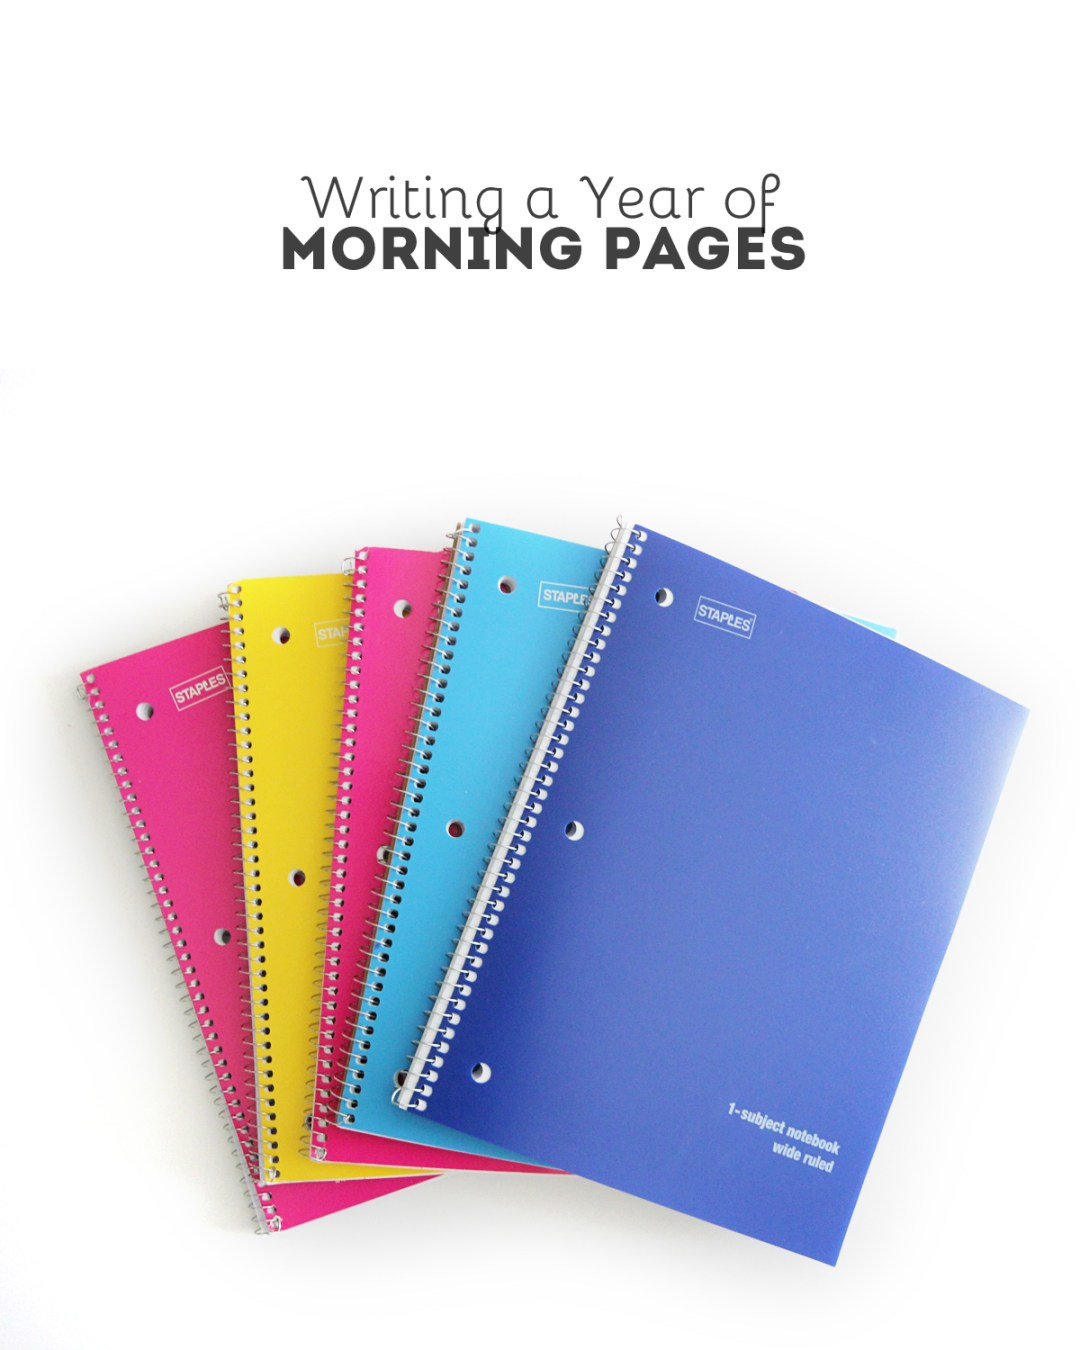 Morning Pages - www.randomolive.com